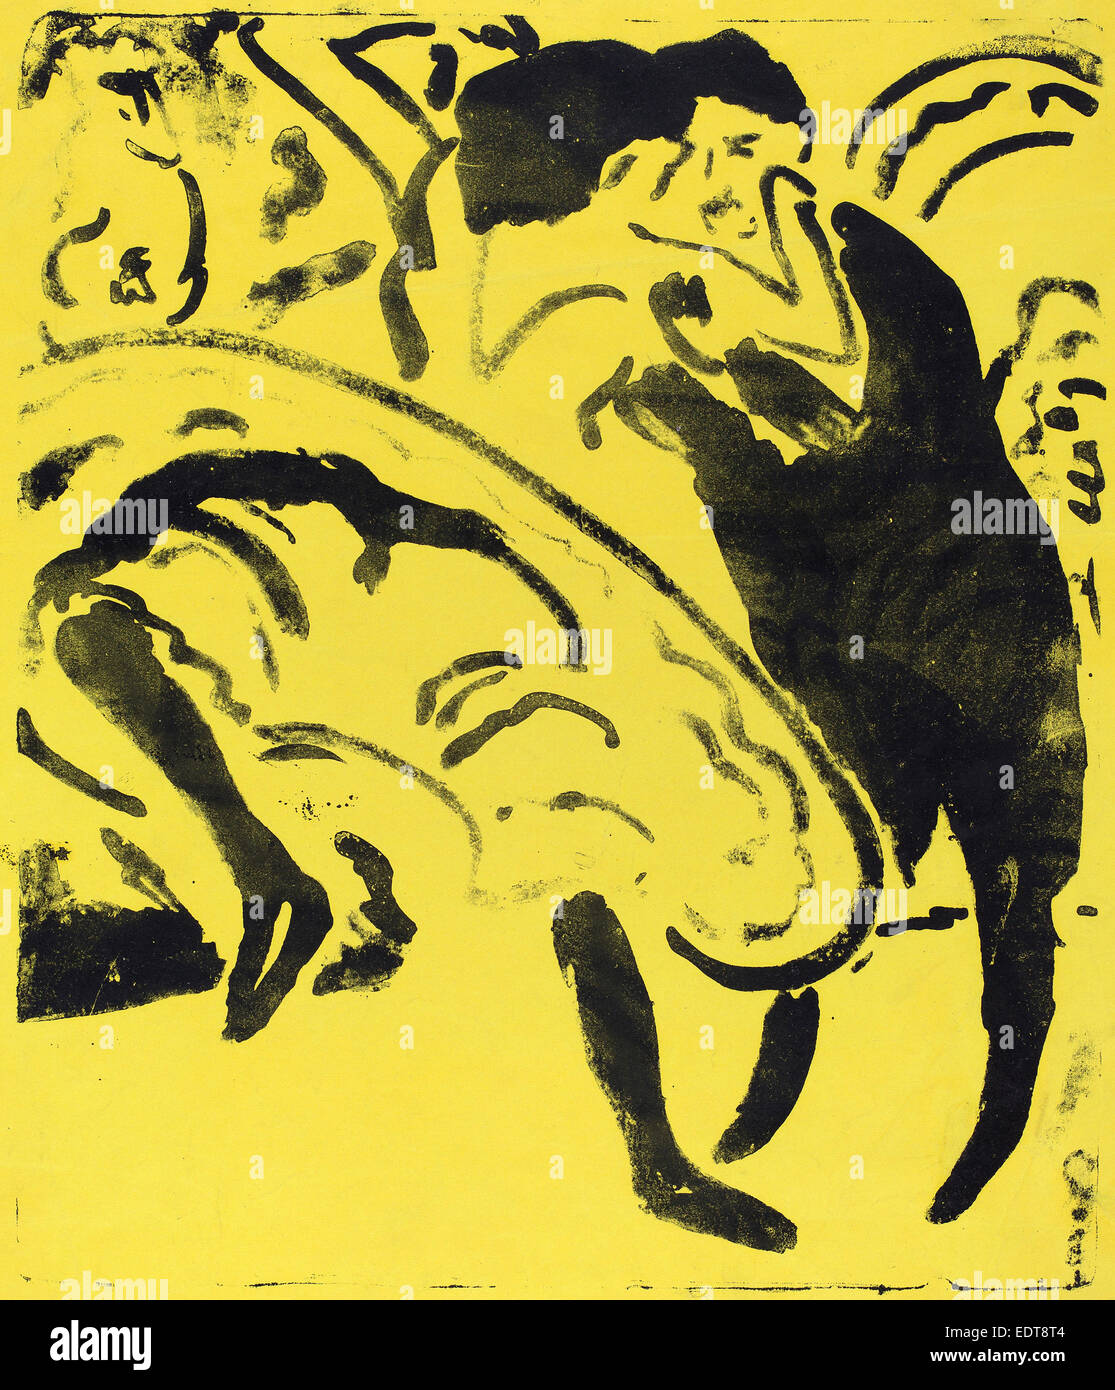 Ernst Ludwig Kirchner, Dancing Couple (Tanzpaar), German, 1880 - 1938, 1909, lithograph on yellow wove paper - Stock Image